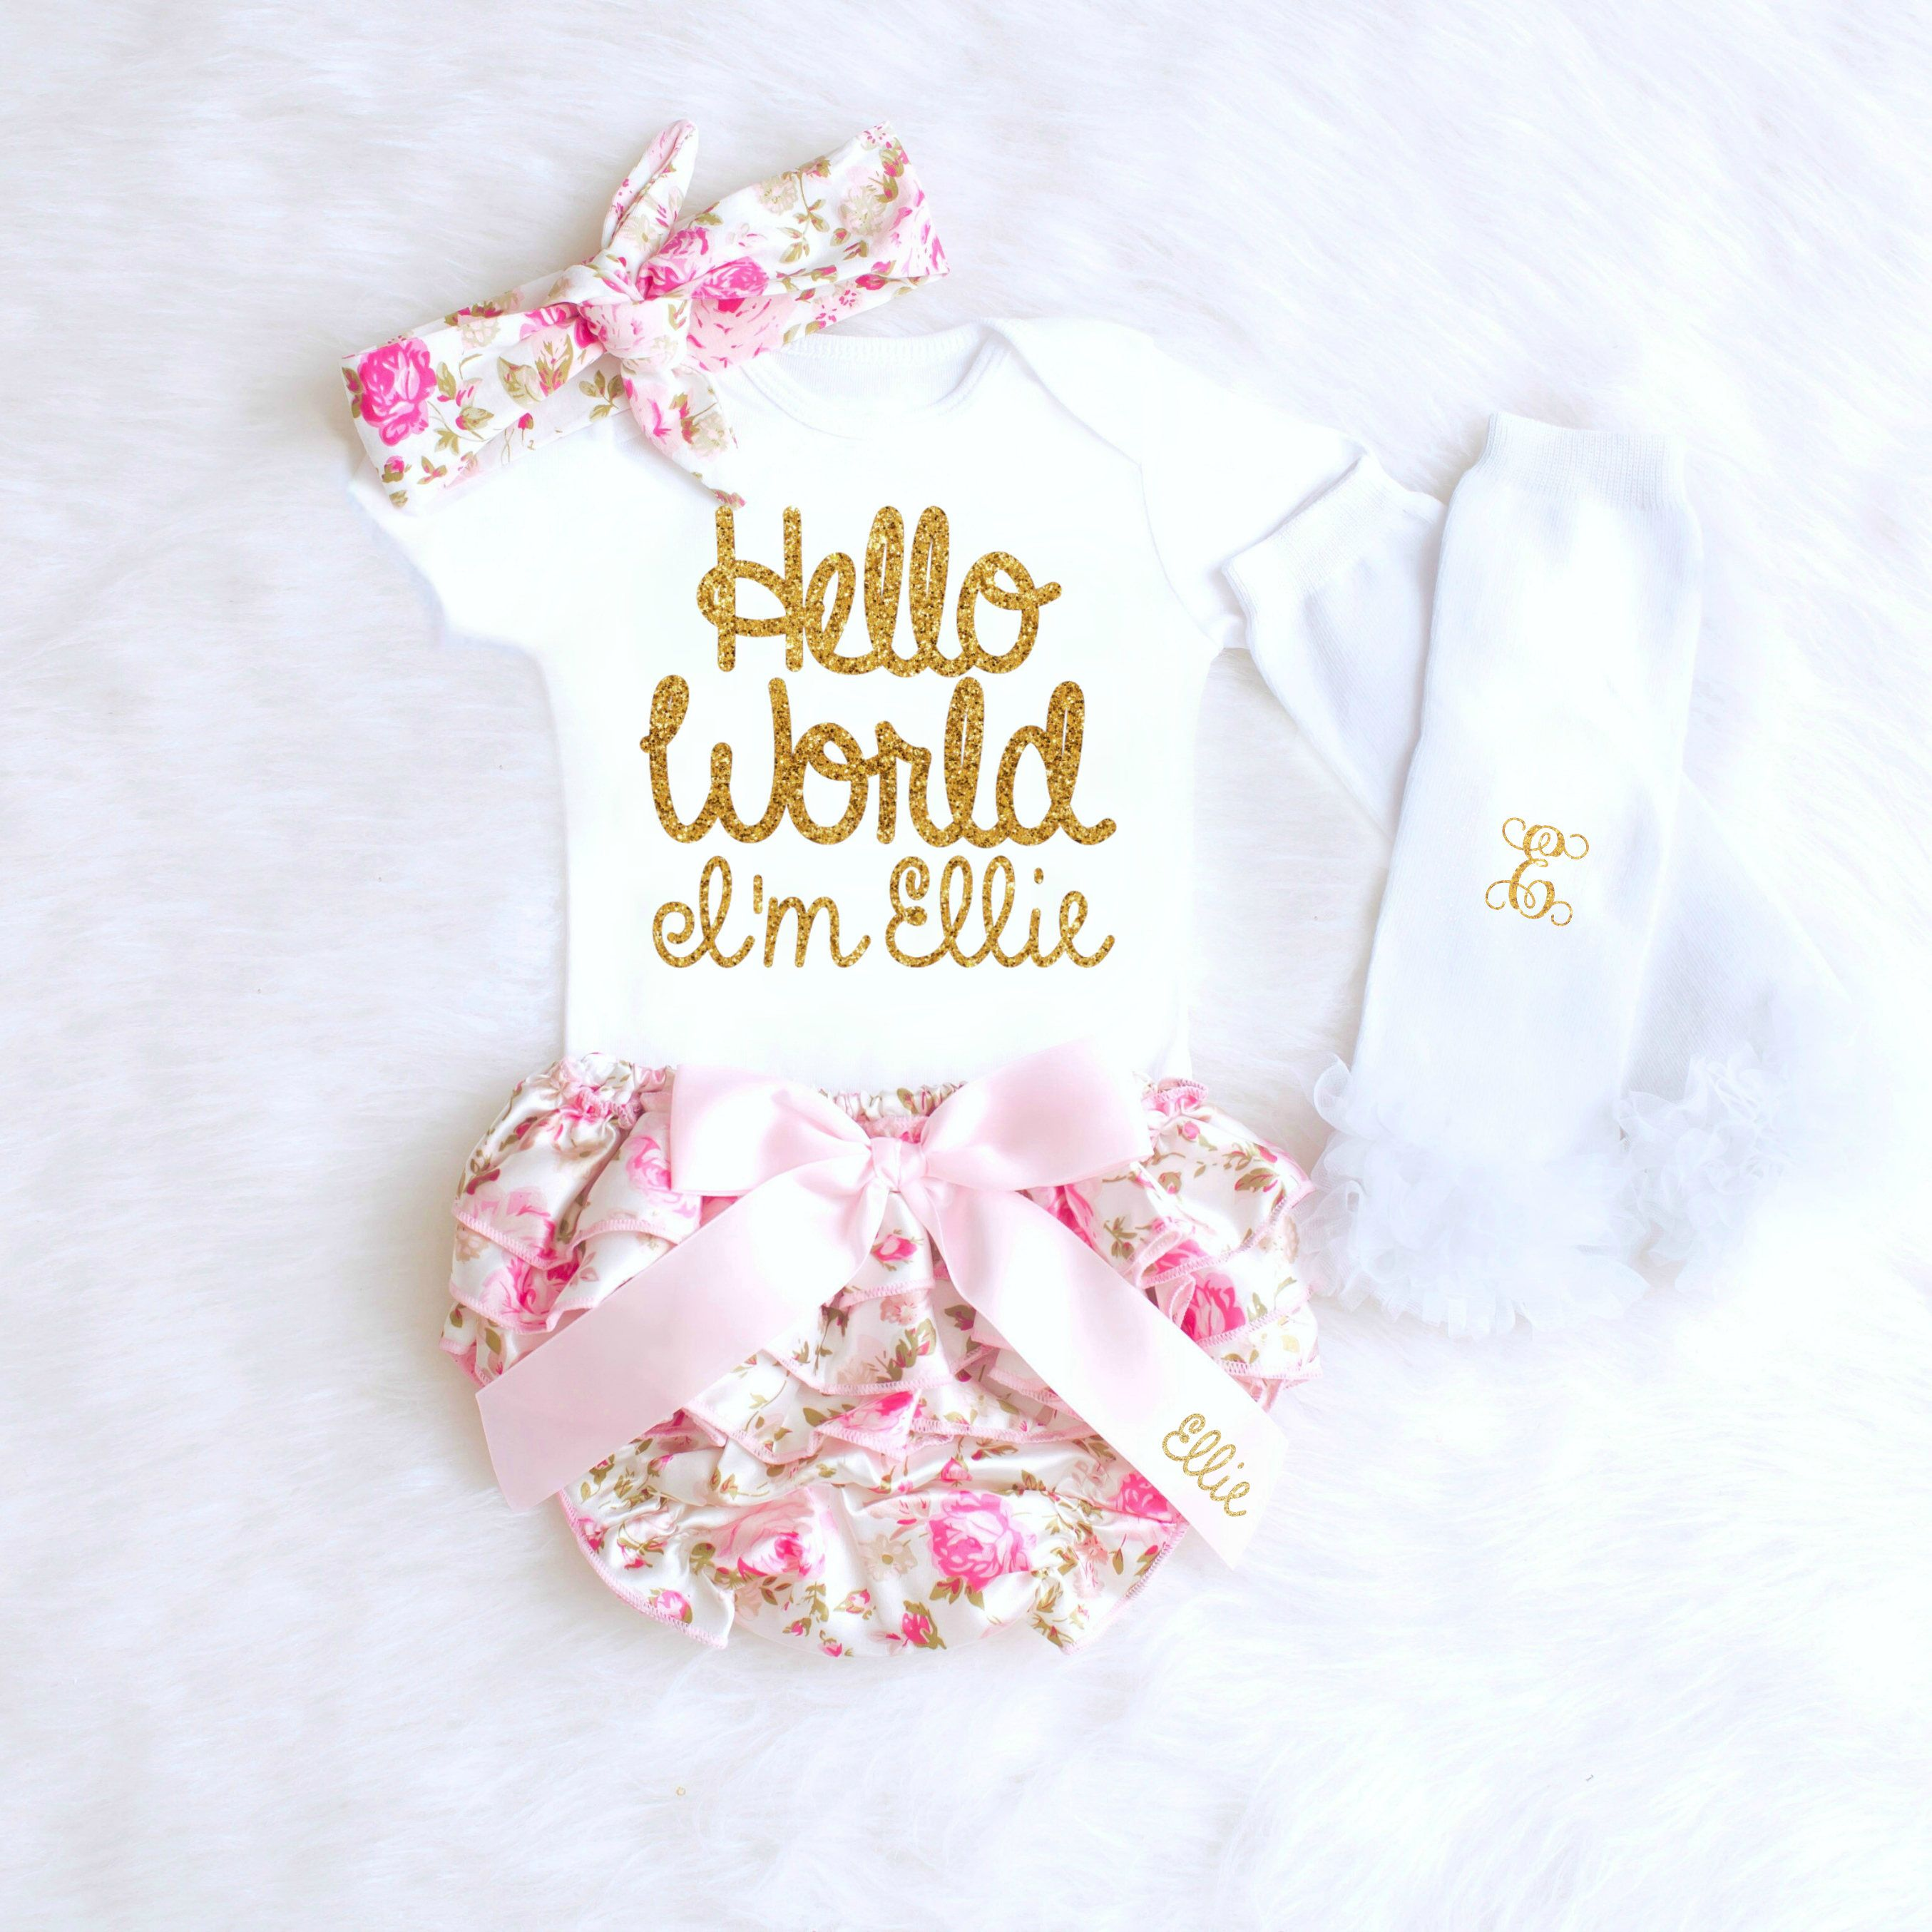 ede3226e0761 Baby Girl Coming Home Outfit